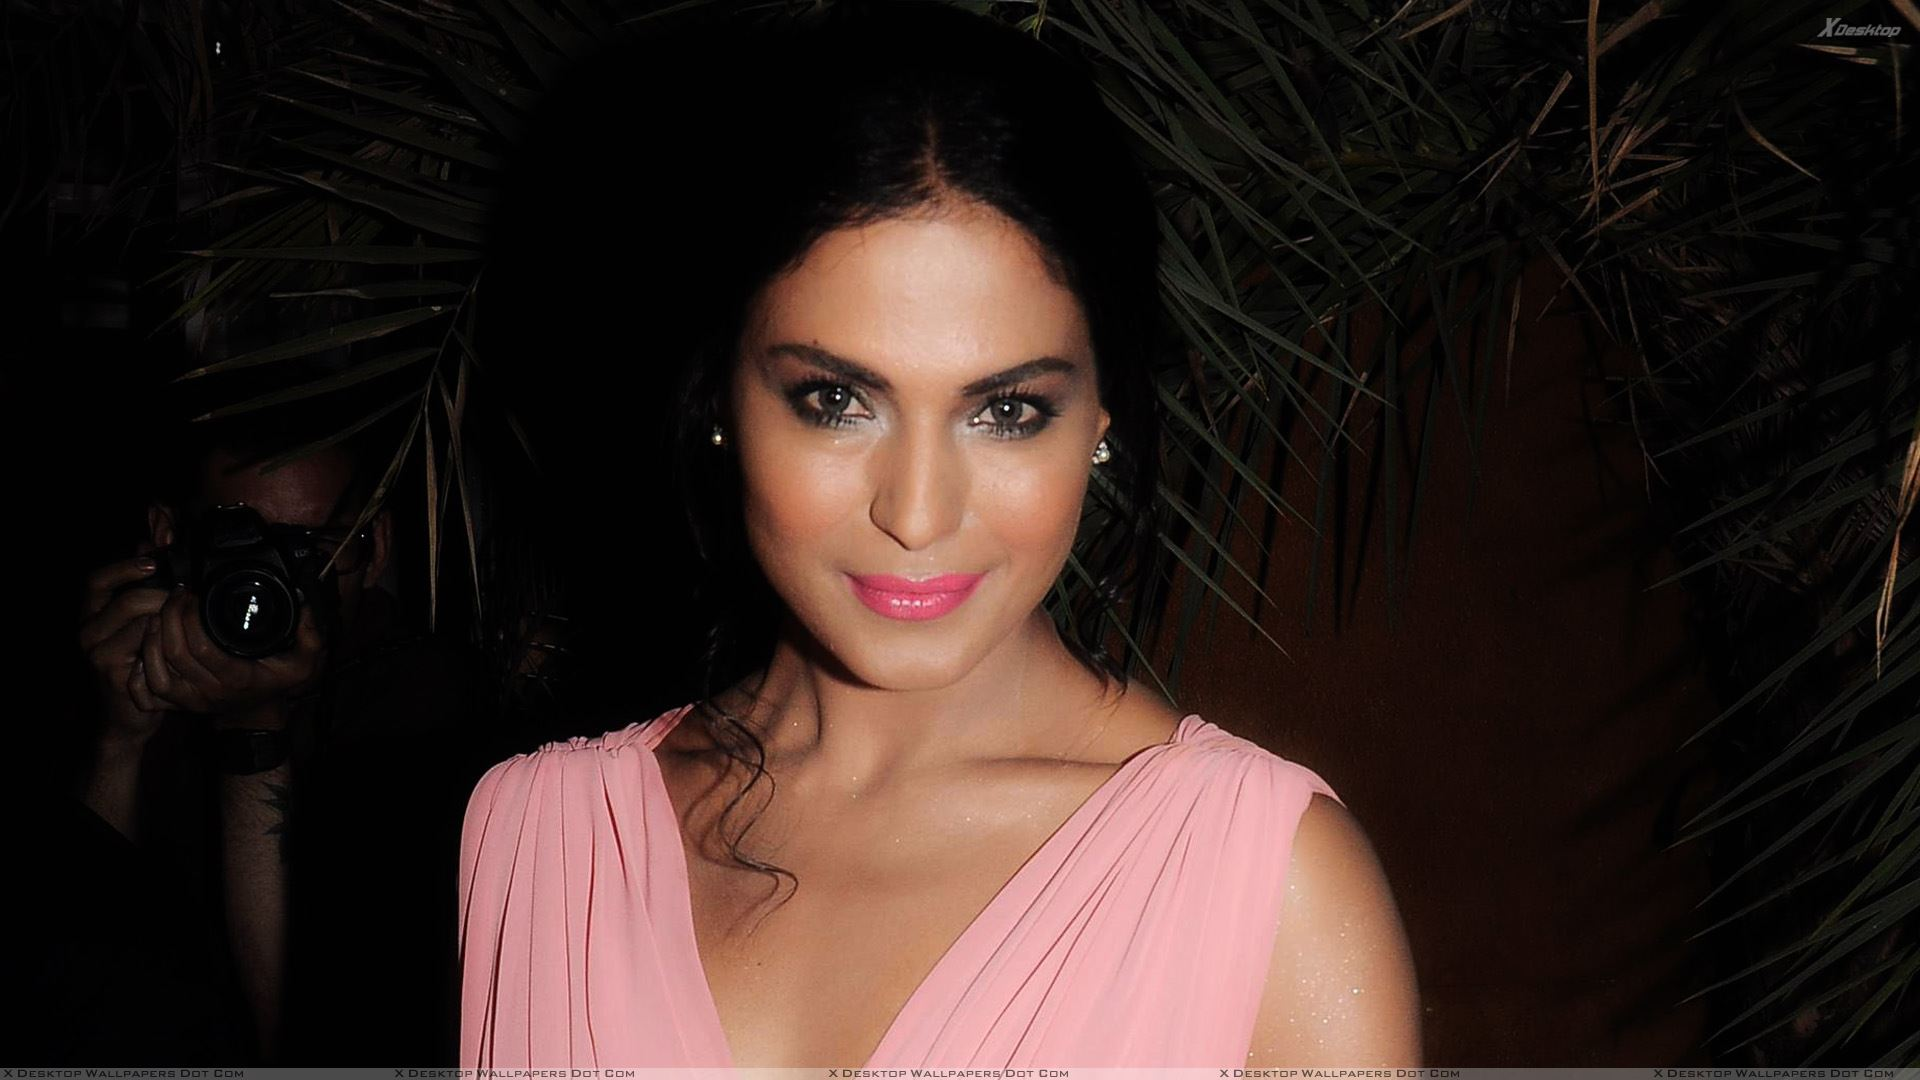 Veena Malik Wallpapers Photos Images In Hd